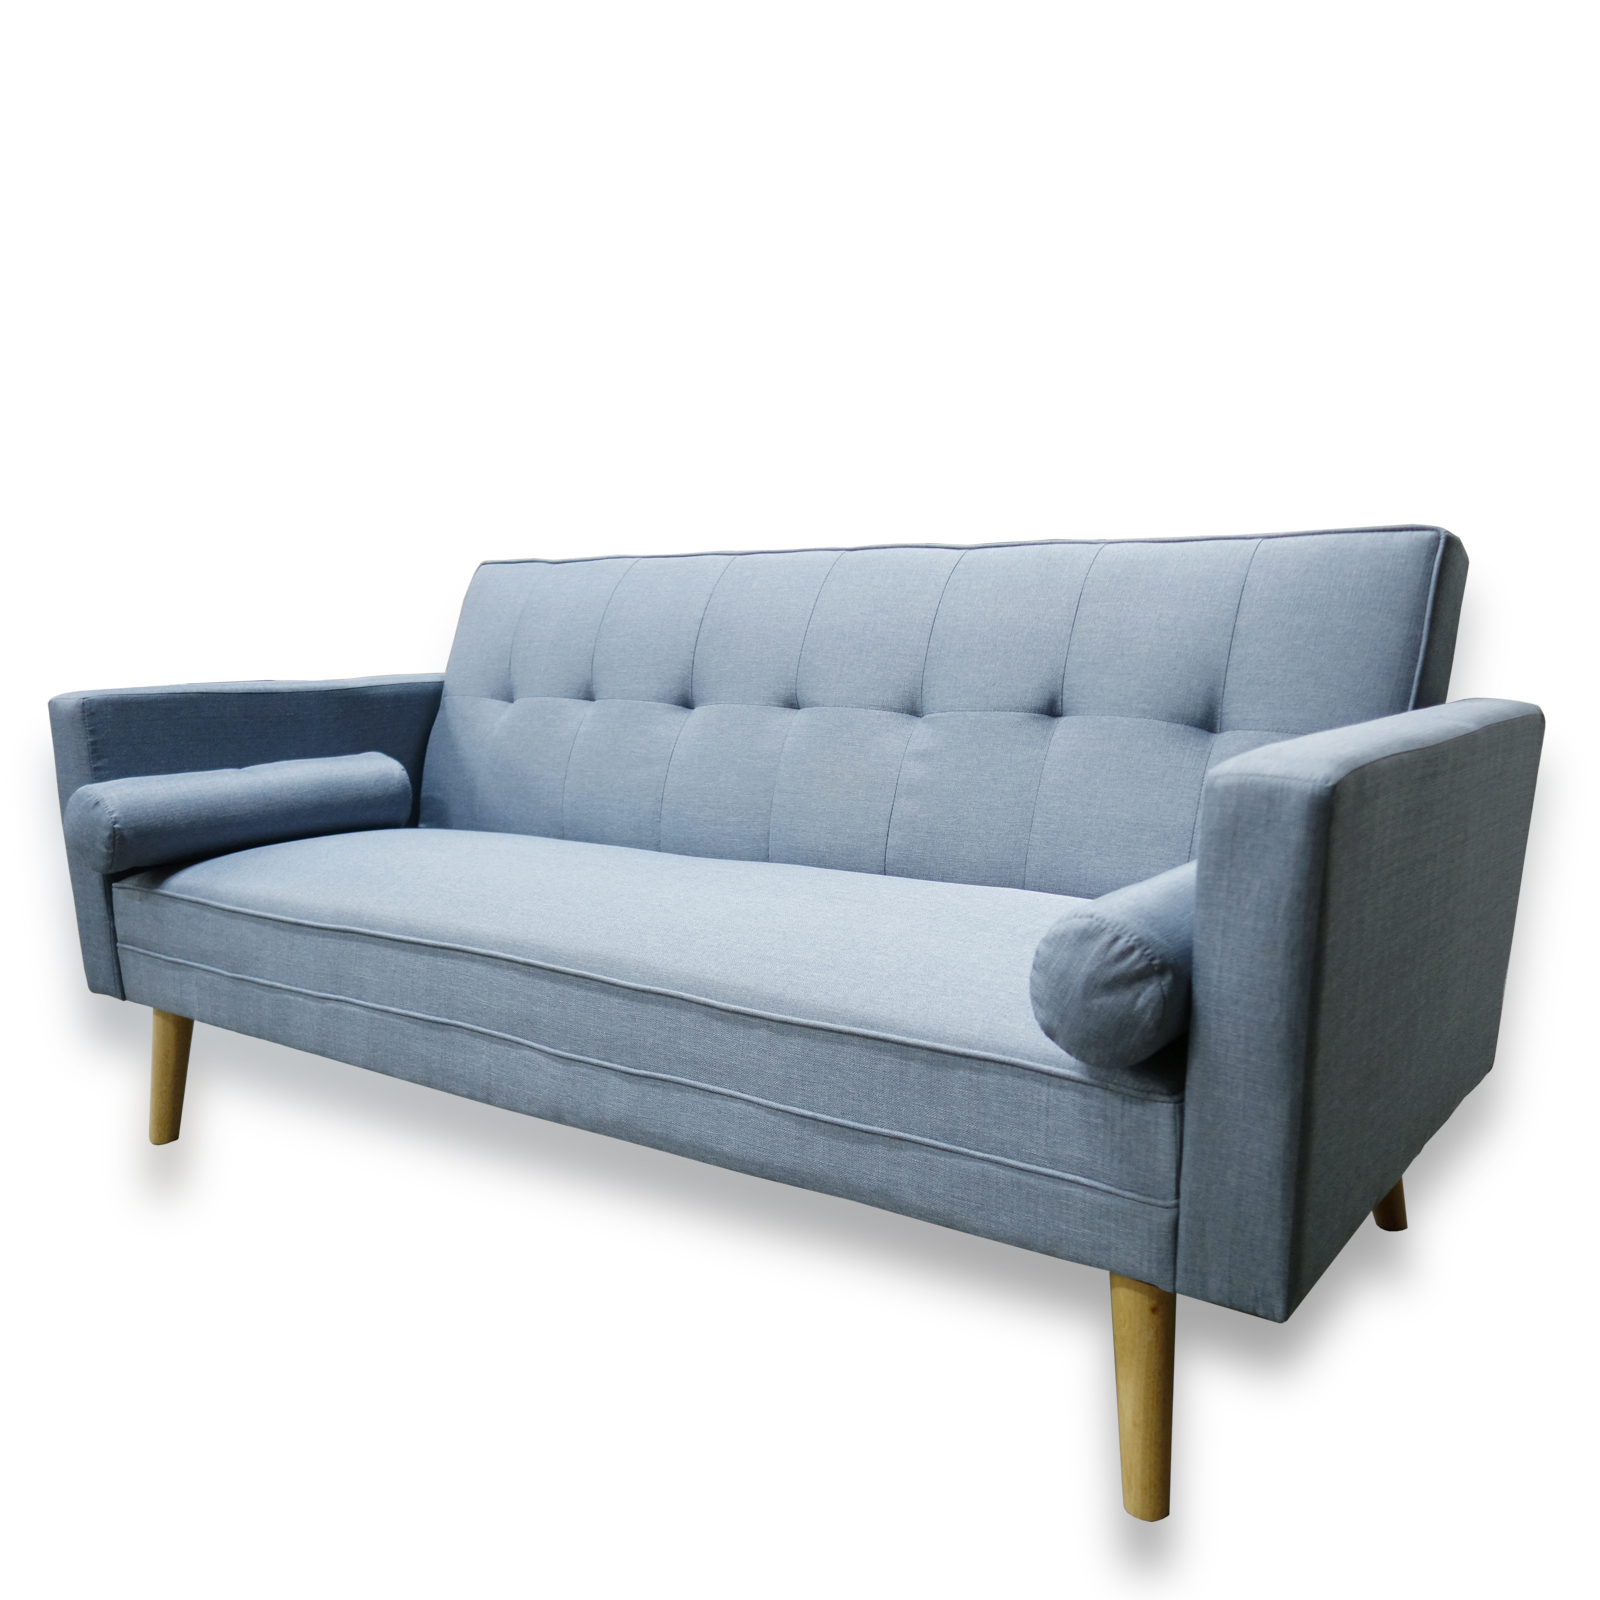 Amy brand new blue or grey fabric click clack sofa bed for Sofa bed 2 in 1